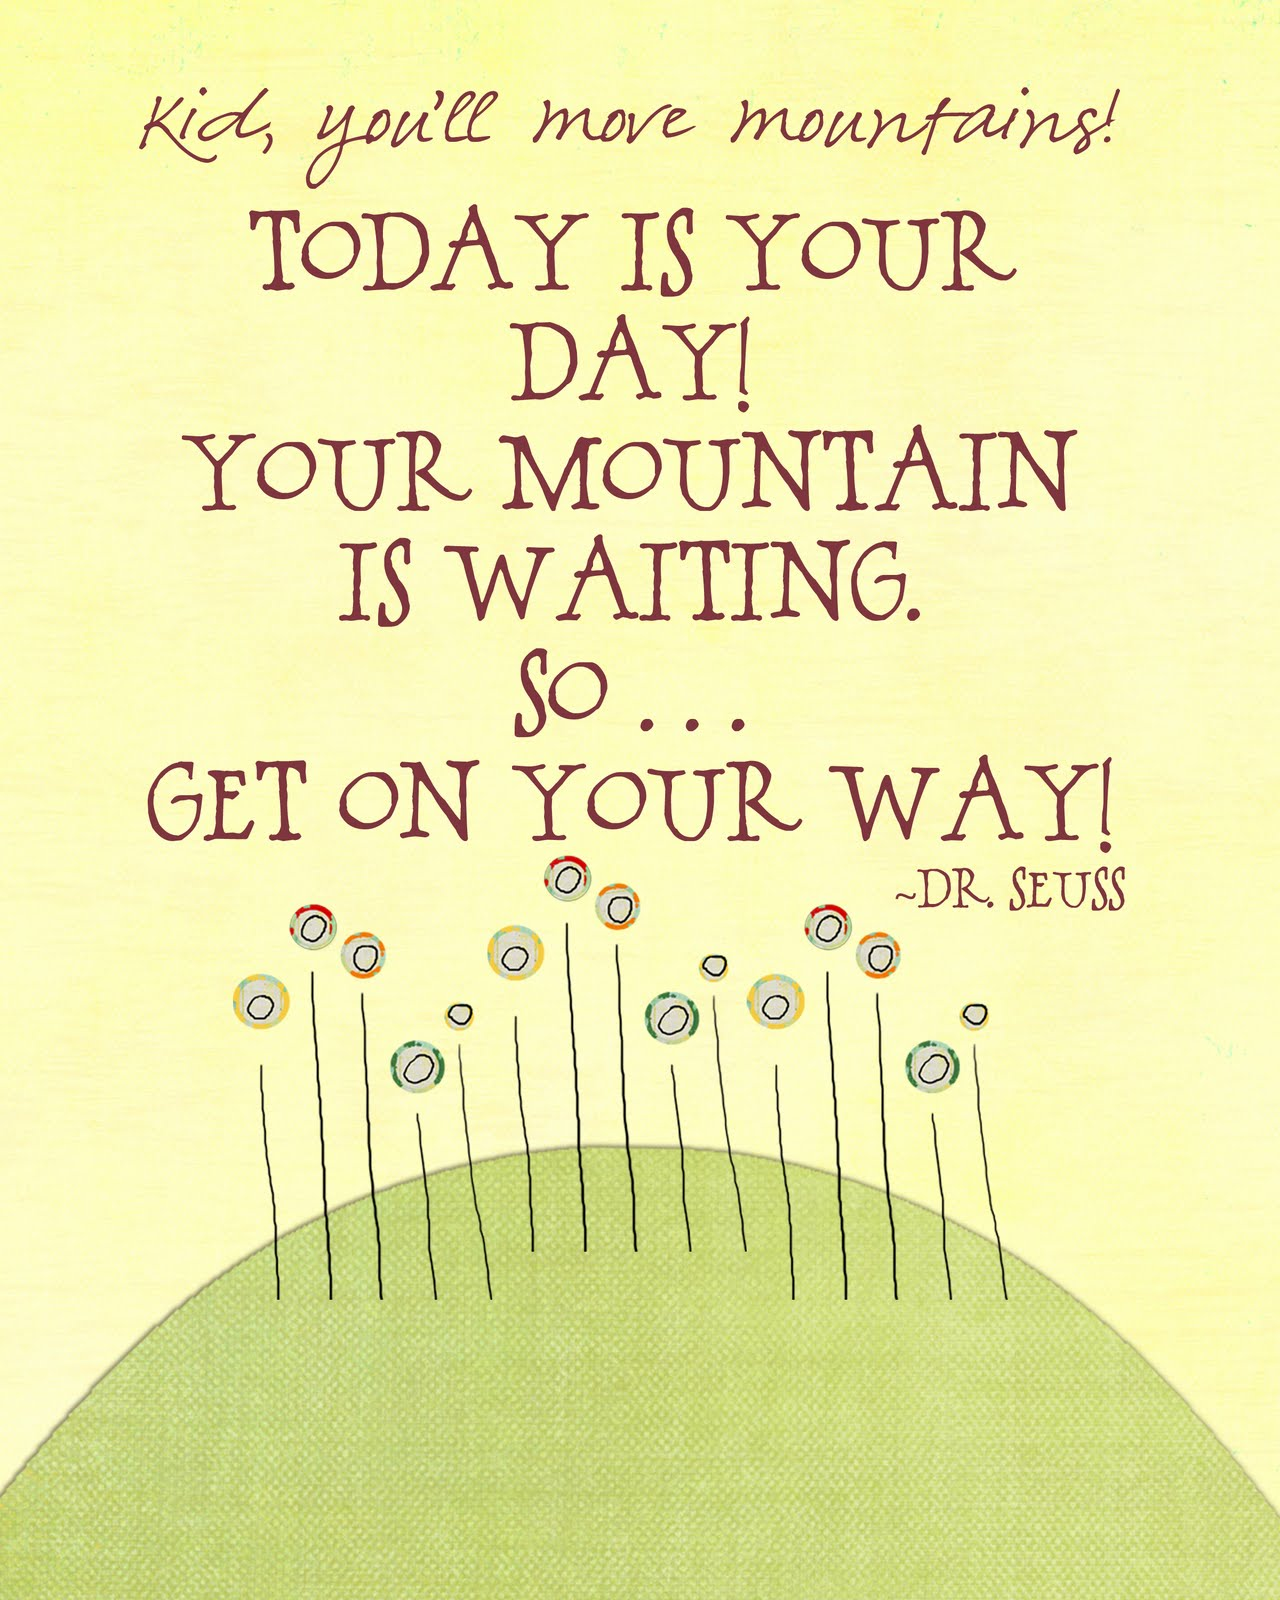 Inspirational Quotes For Elementary School: Cute Elementary Quotes. QuotesGram